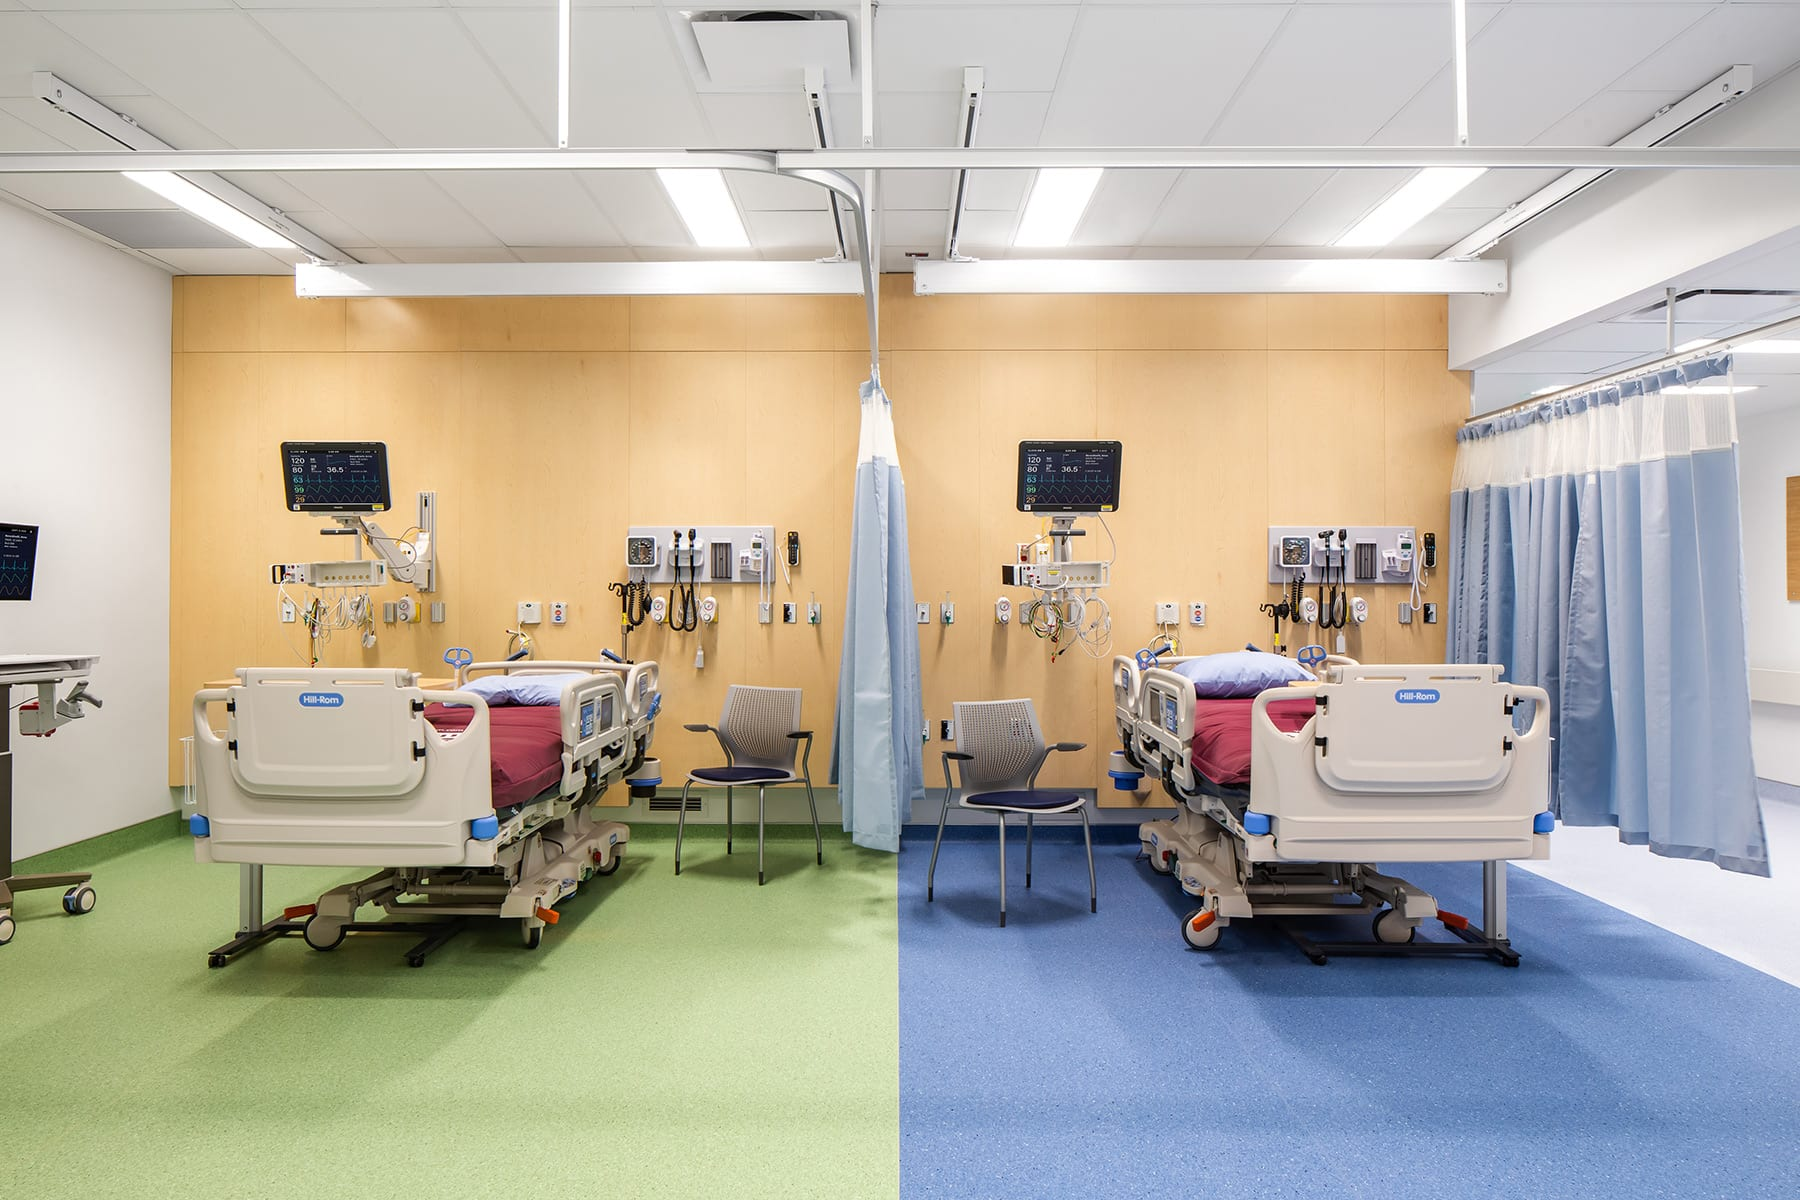 St. Paul's Hospital's high acuity unit - clinical equipment, medical air and gas, intensive care